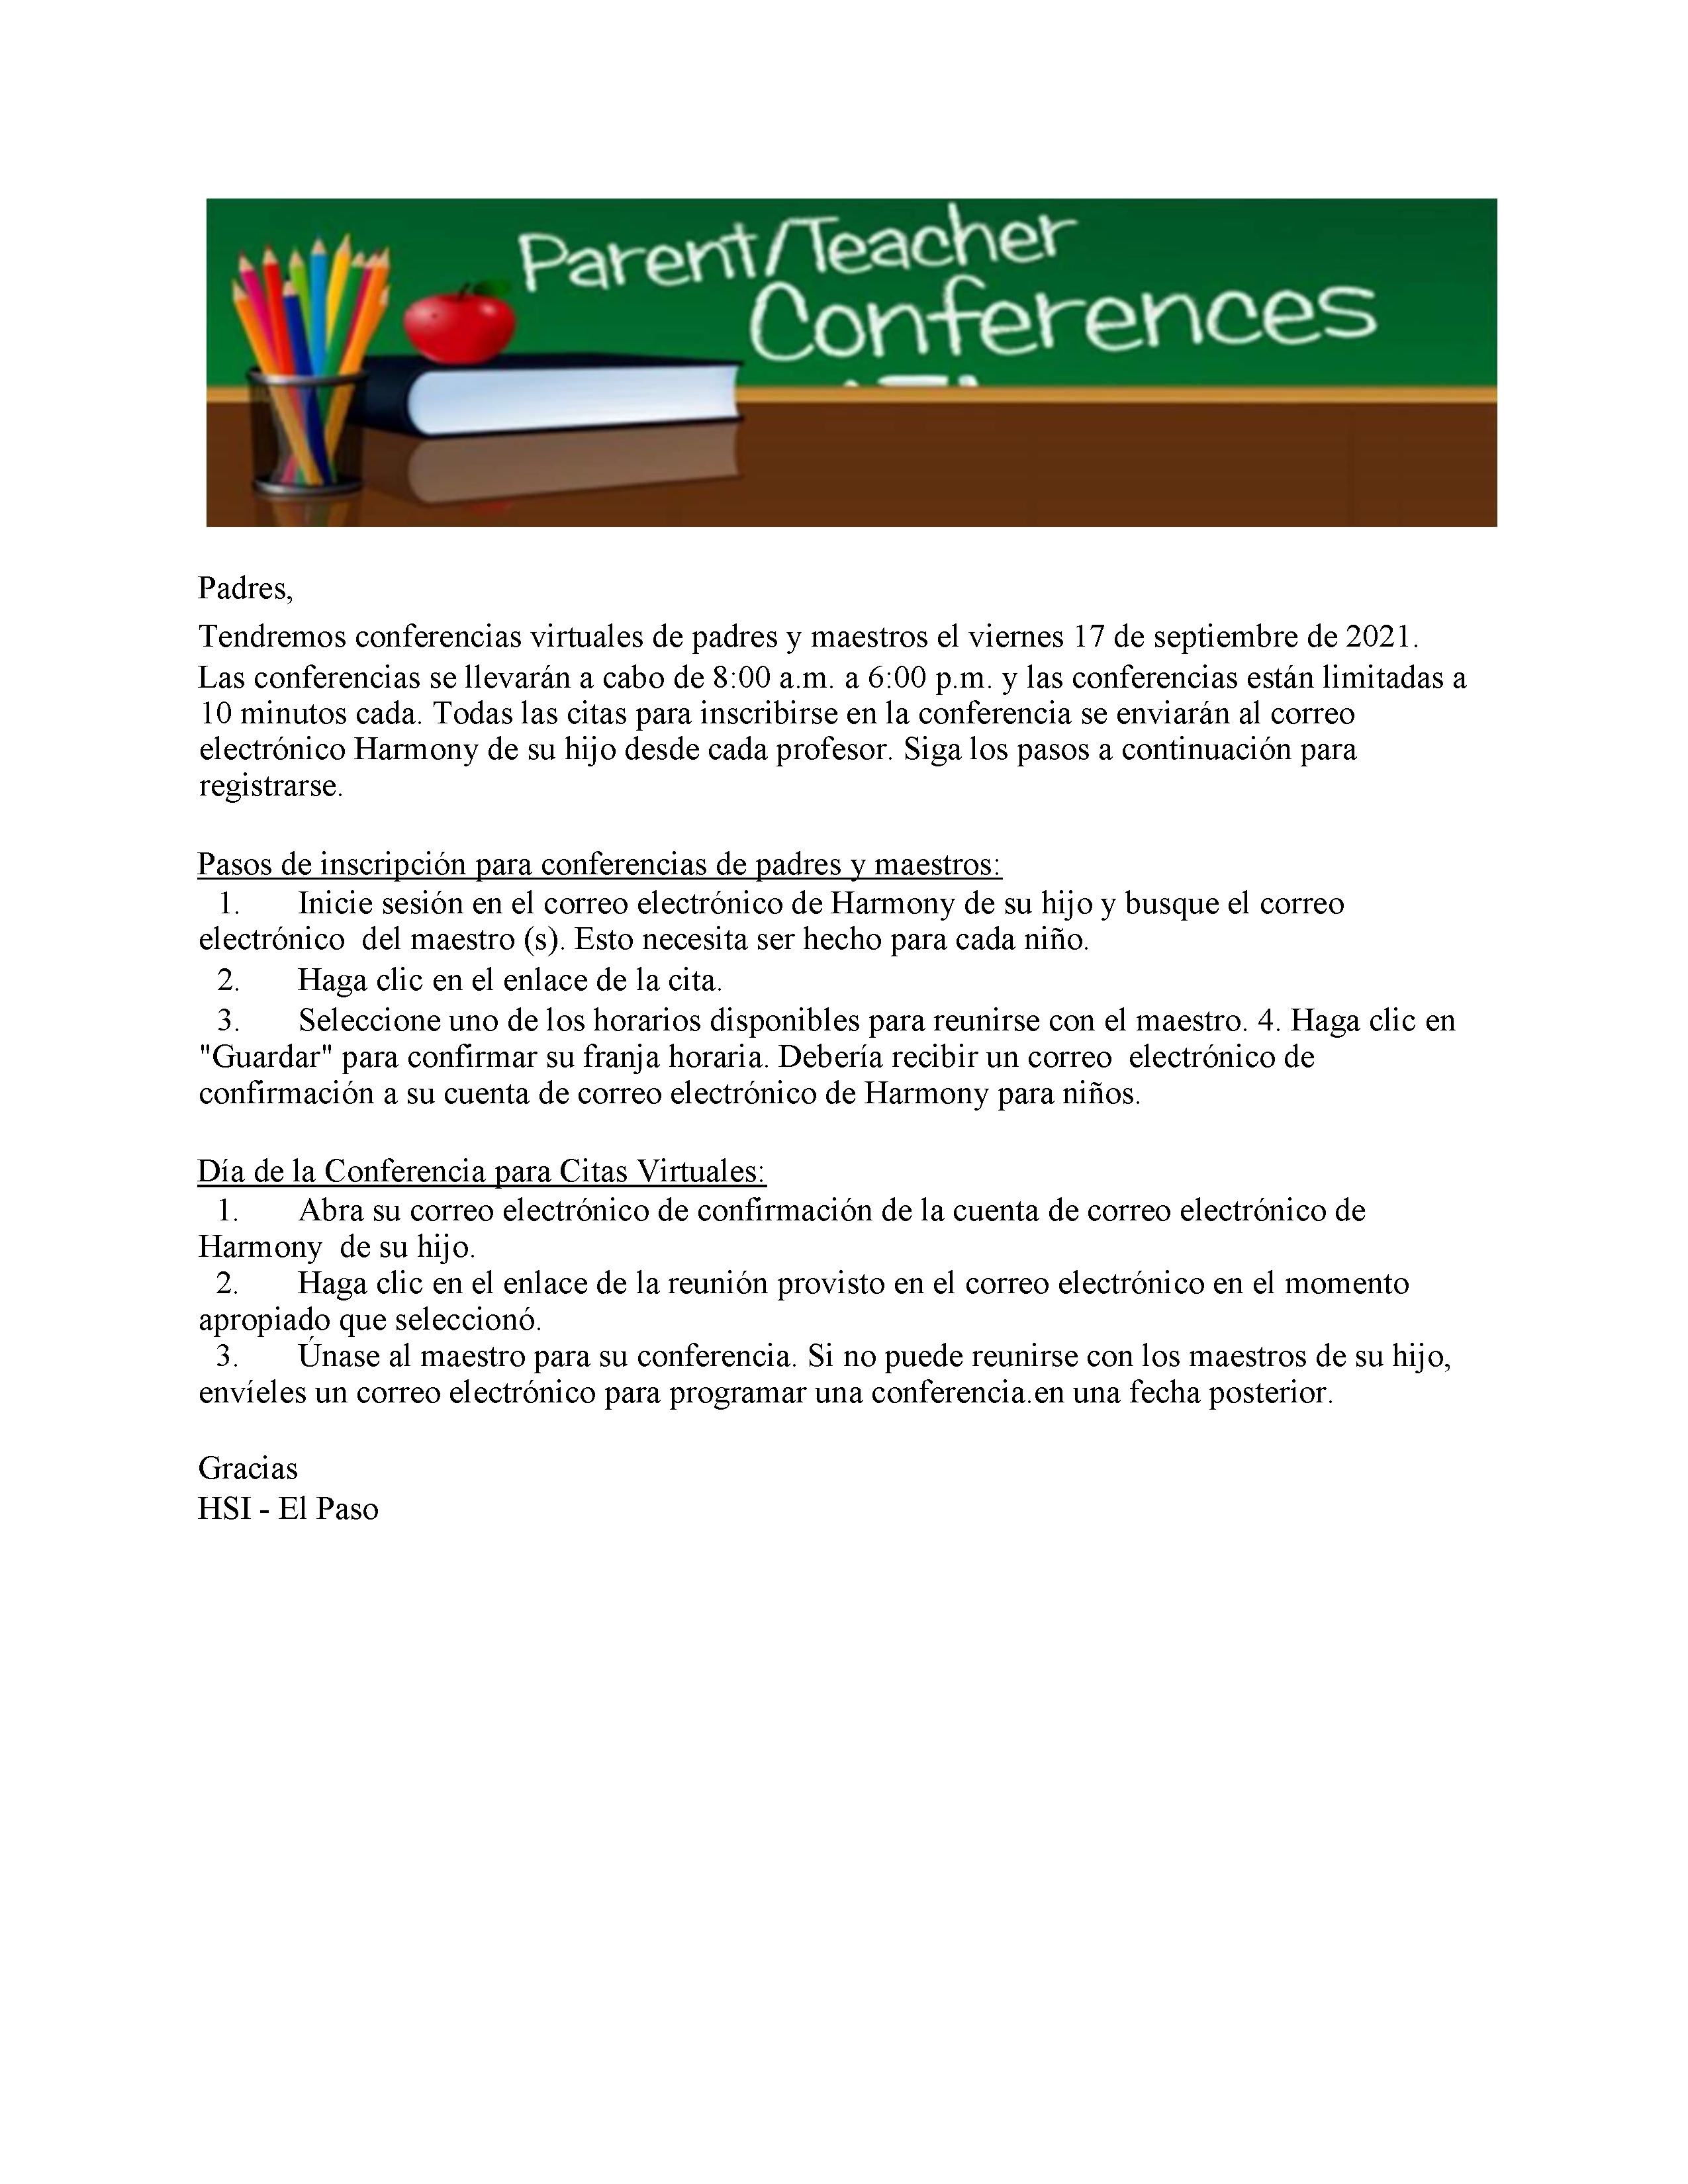 An image of the Sept 17, 2021 Parent Teacher Conference Instruction flyer in Spanish